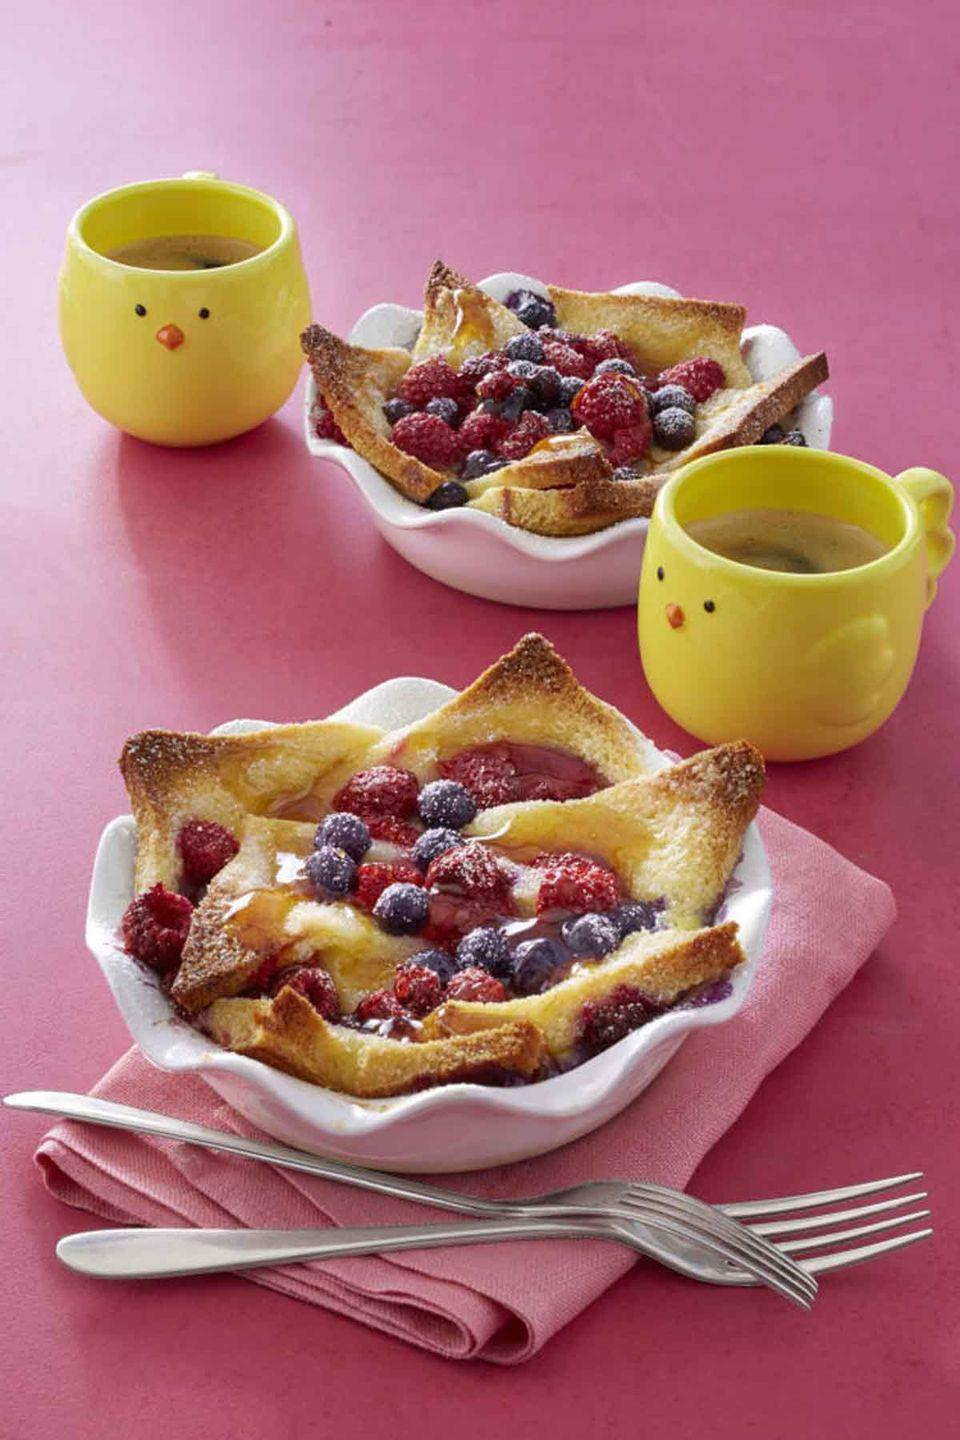 """<p>Why eat cereal when you can now enjoy French toast in a bowl? Don't forget to top the toast with ripe berries and maple syrup — or better yet, your mother's favorite toppings. </p><p><strong><a href=""""https://www.womansday.com/food-recipes/recipes/a58132/french-toast-bowls-recipe/"""" rel=""""nofollow noopener"""" target=""""_blank"""" data-ylk=""""slk:Get the French Toast Bowls recipe."""" class=""""link rapid-noclick-resp""""><em>Get the French Toast Bowls recipe.</em></a></strong></p>"""